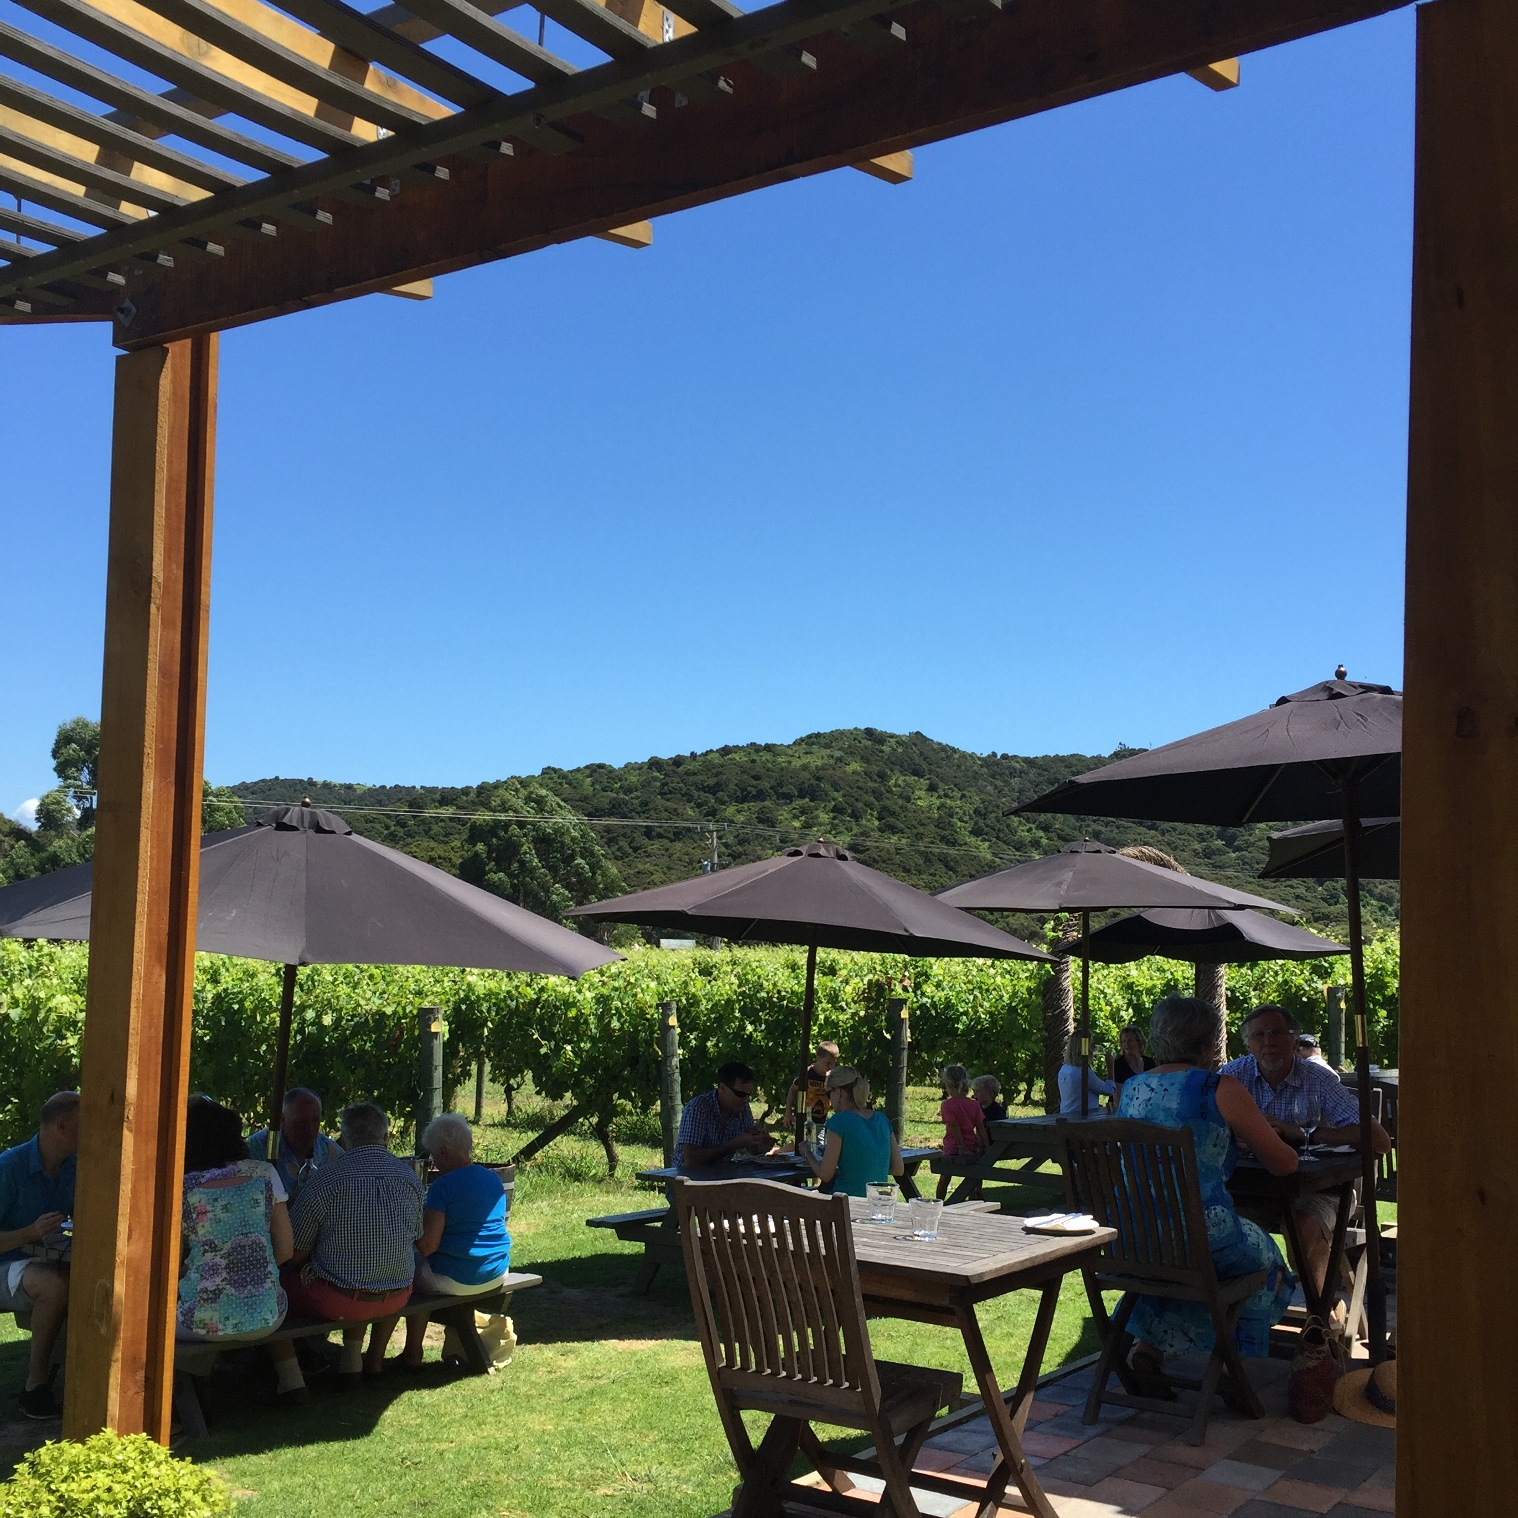 Lunch amongst the vines at Passage Rock